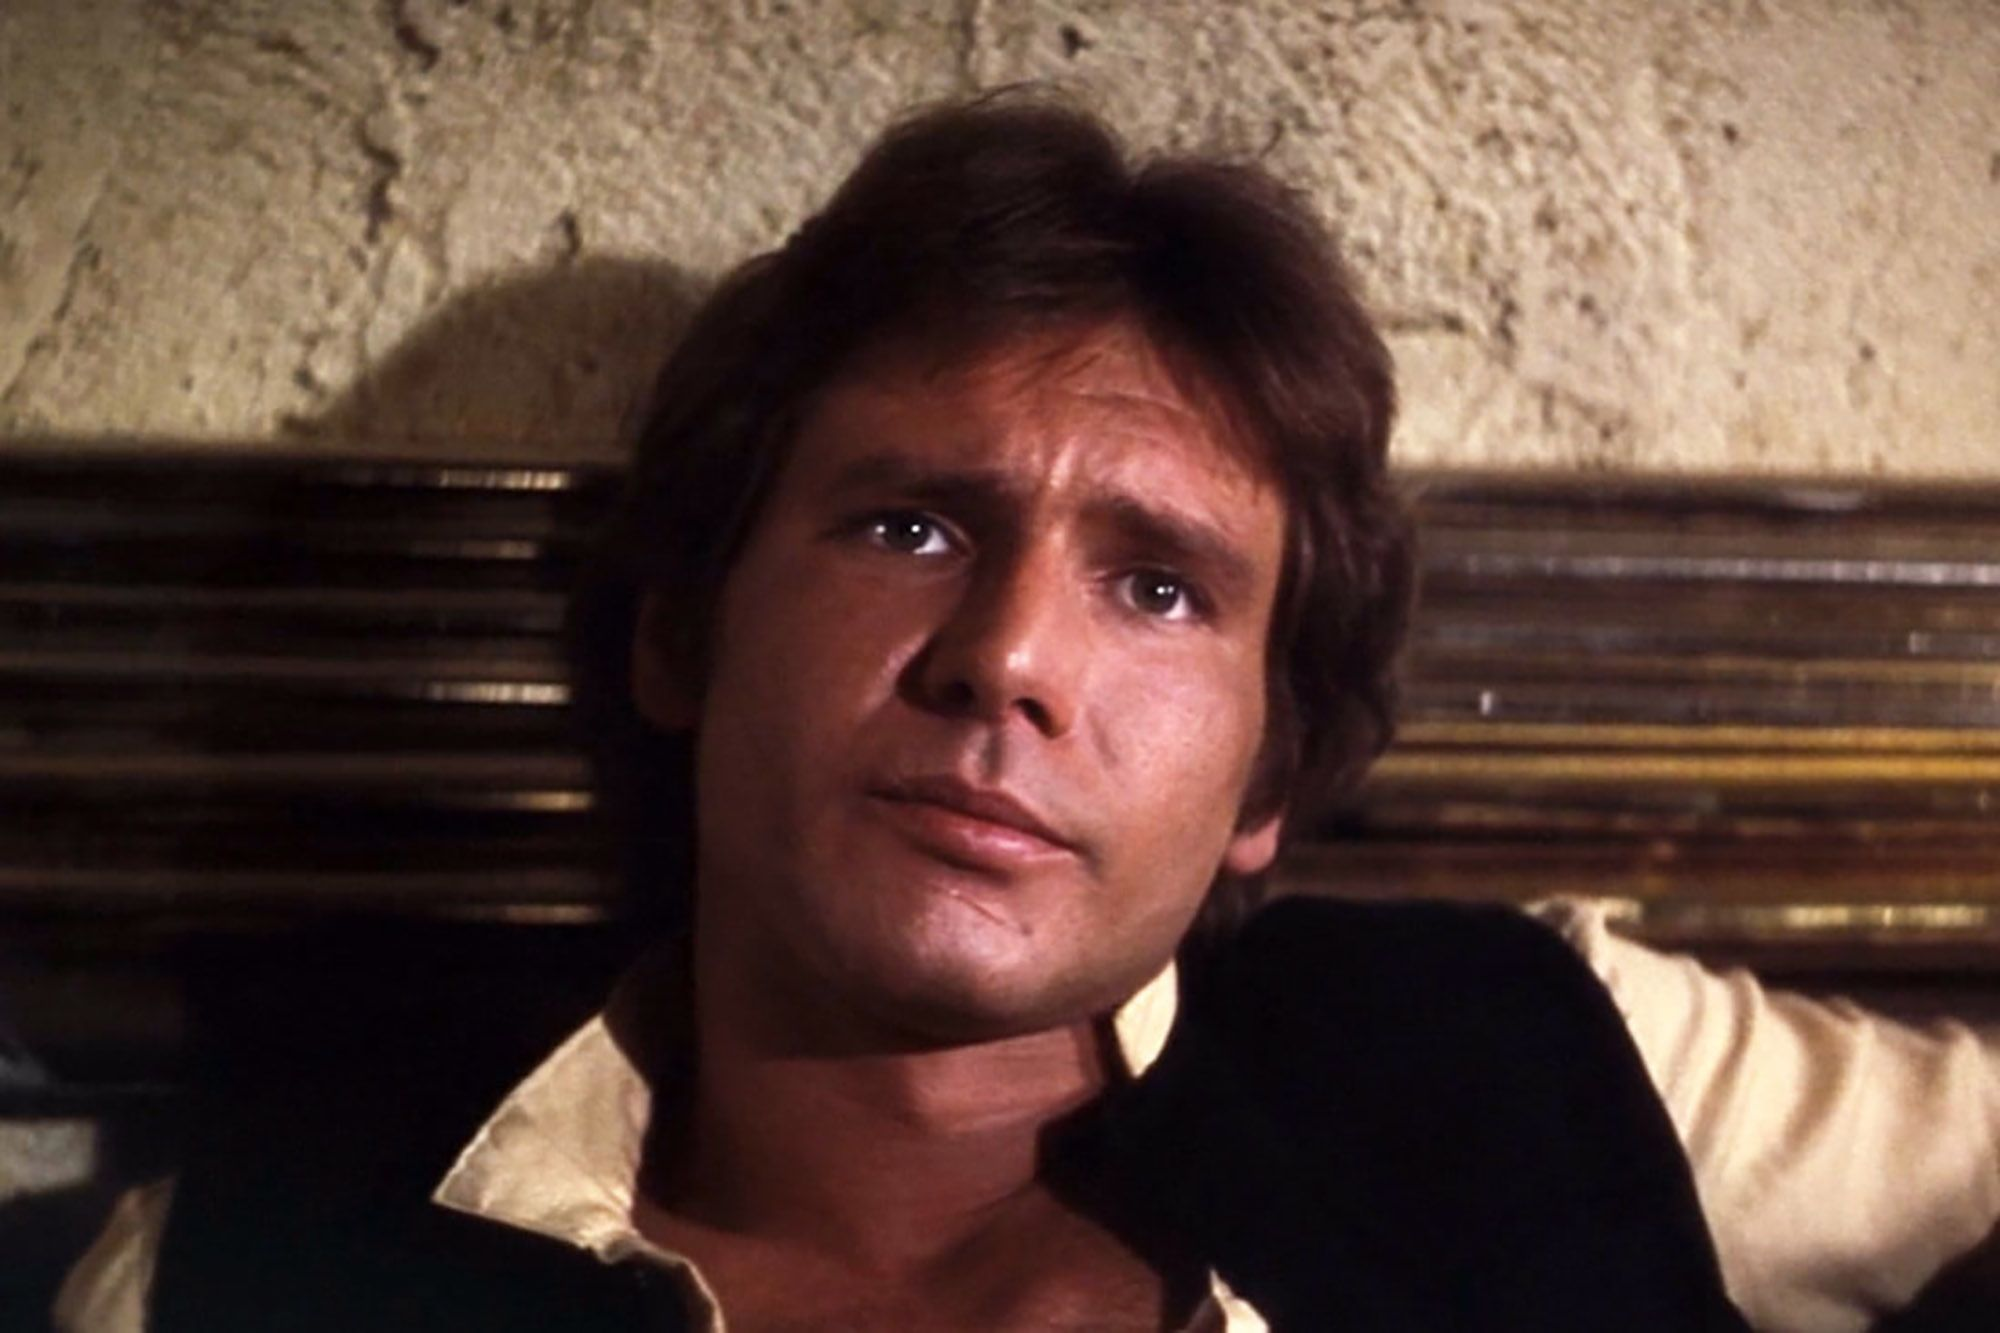 Star Wars timeline of all the ways Han shot Greedo: first, in self-defence, and Maclunkey